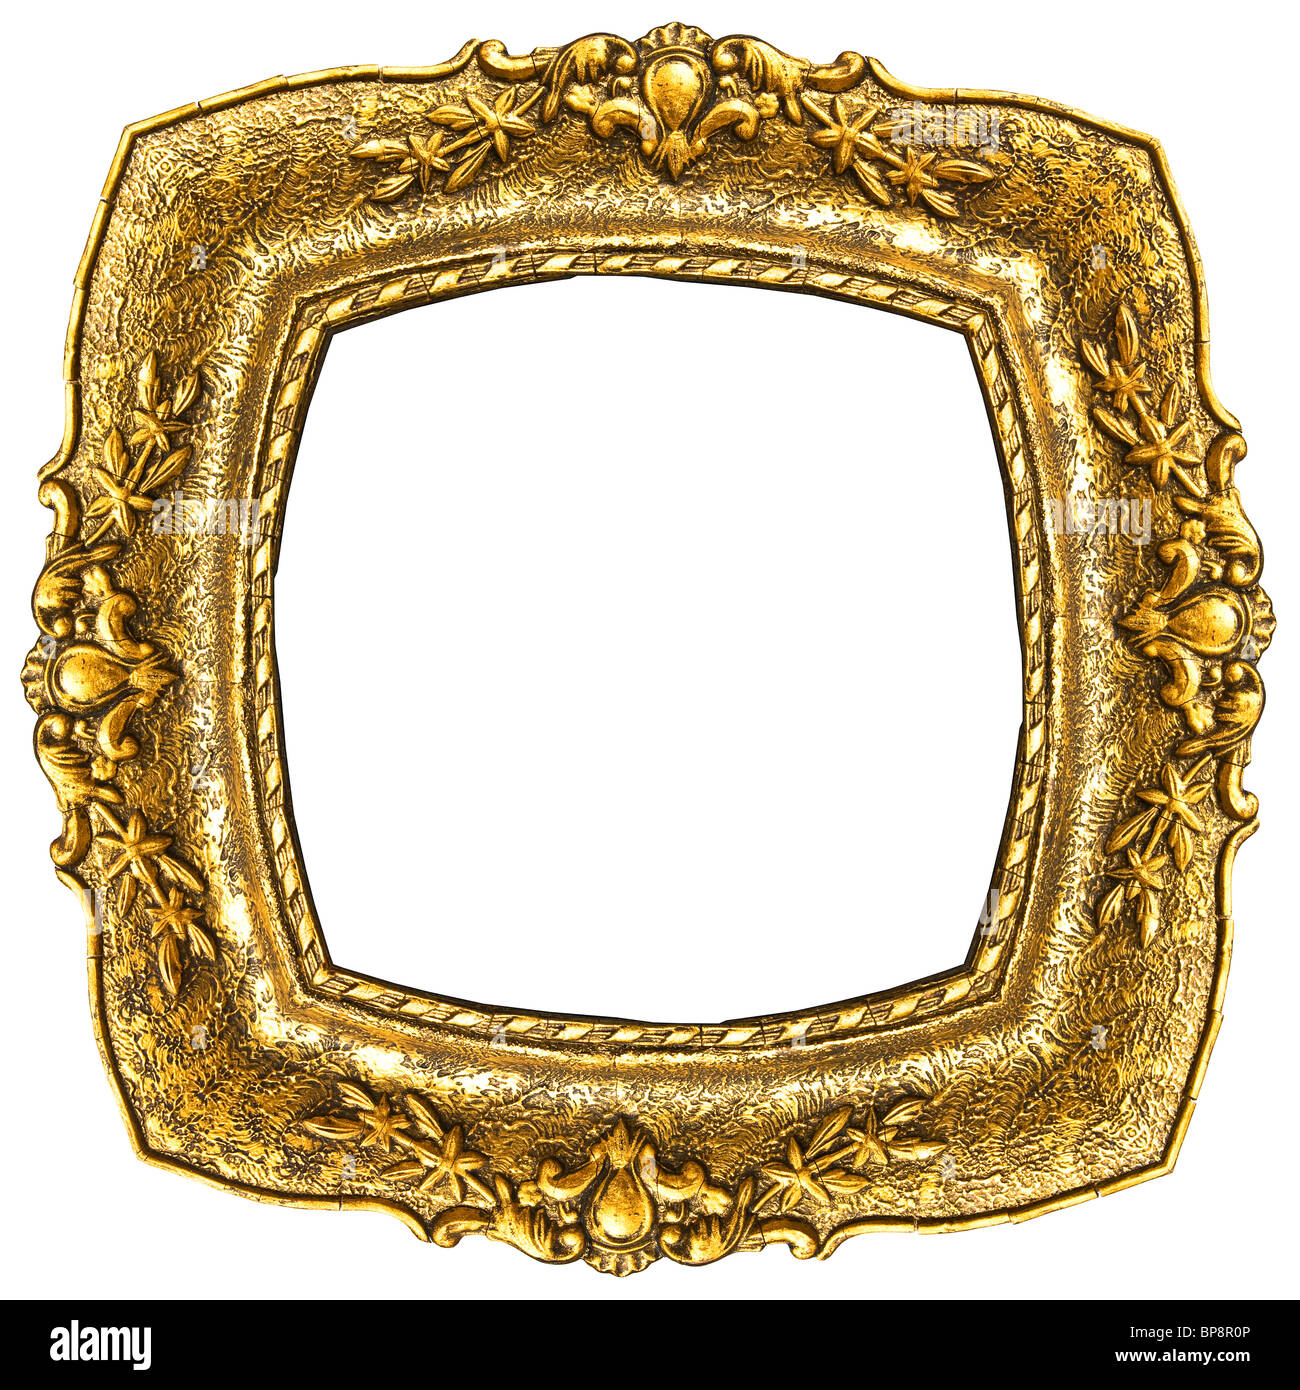 Old fashion retro gold picture frame isolated on white background old fashion retro gold picture frame isolated on white background jeuxipadfo Gallery